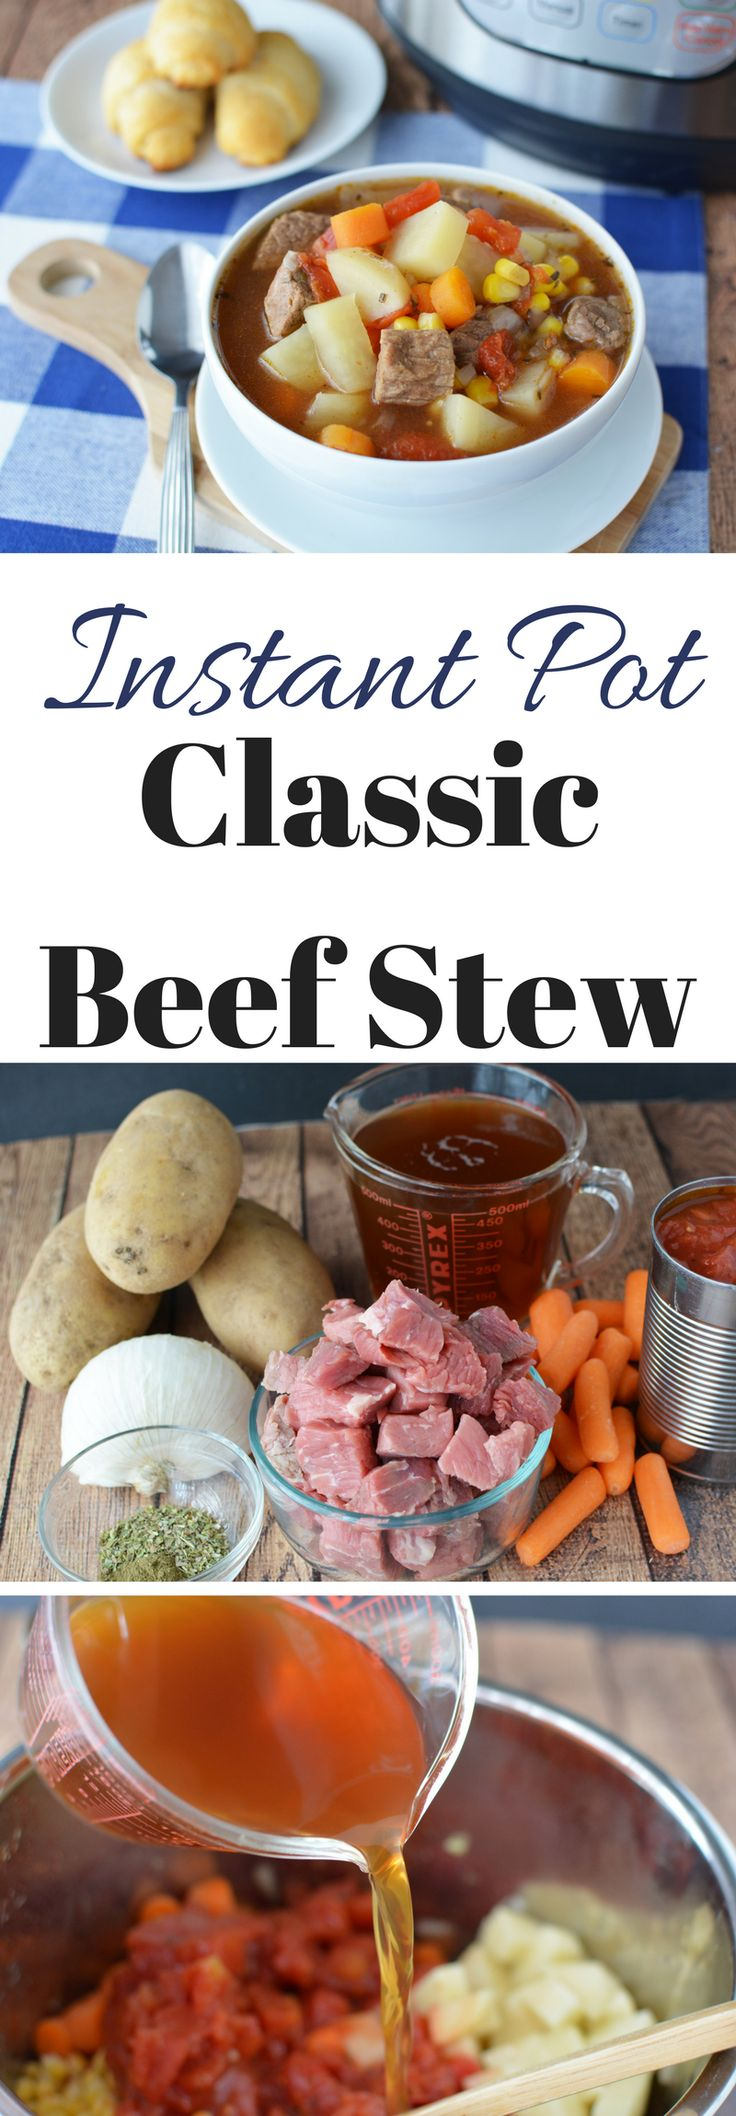 This Instant Pot Beef Stew Recipe uses basic ingredients like beef, potatoes, carrots, and more – This Instant Pot Beef Stew is a classic winter recipe perfect for those cold days. #InstantPotRecipe #InstantPotBeefStew https://www.southernfamilyfun.com/instant-pot-beef-stew/ via @winonarogers